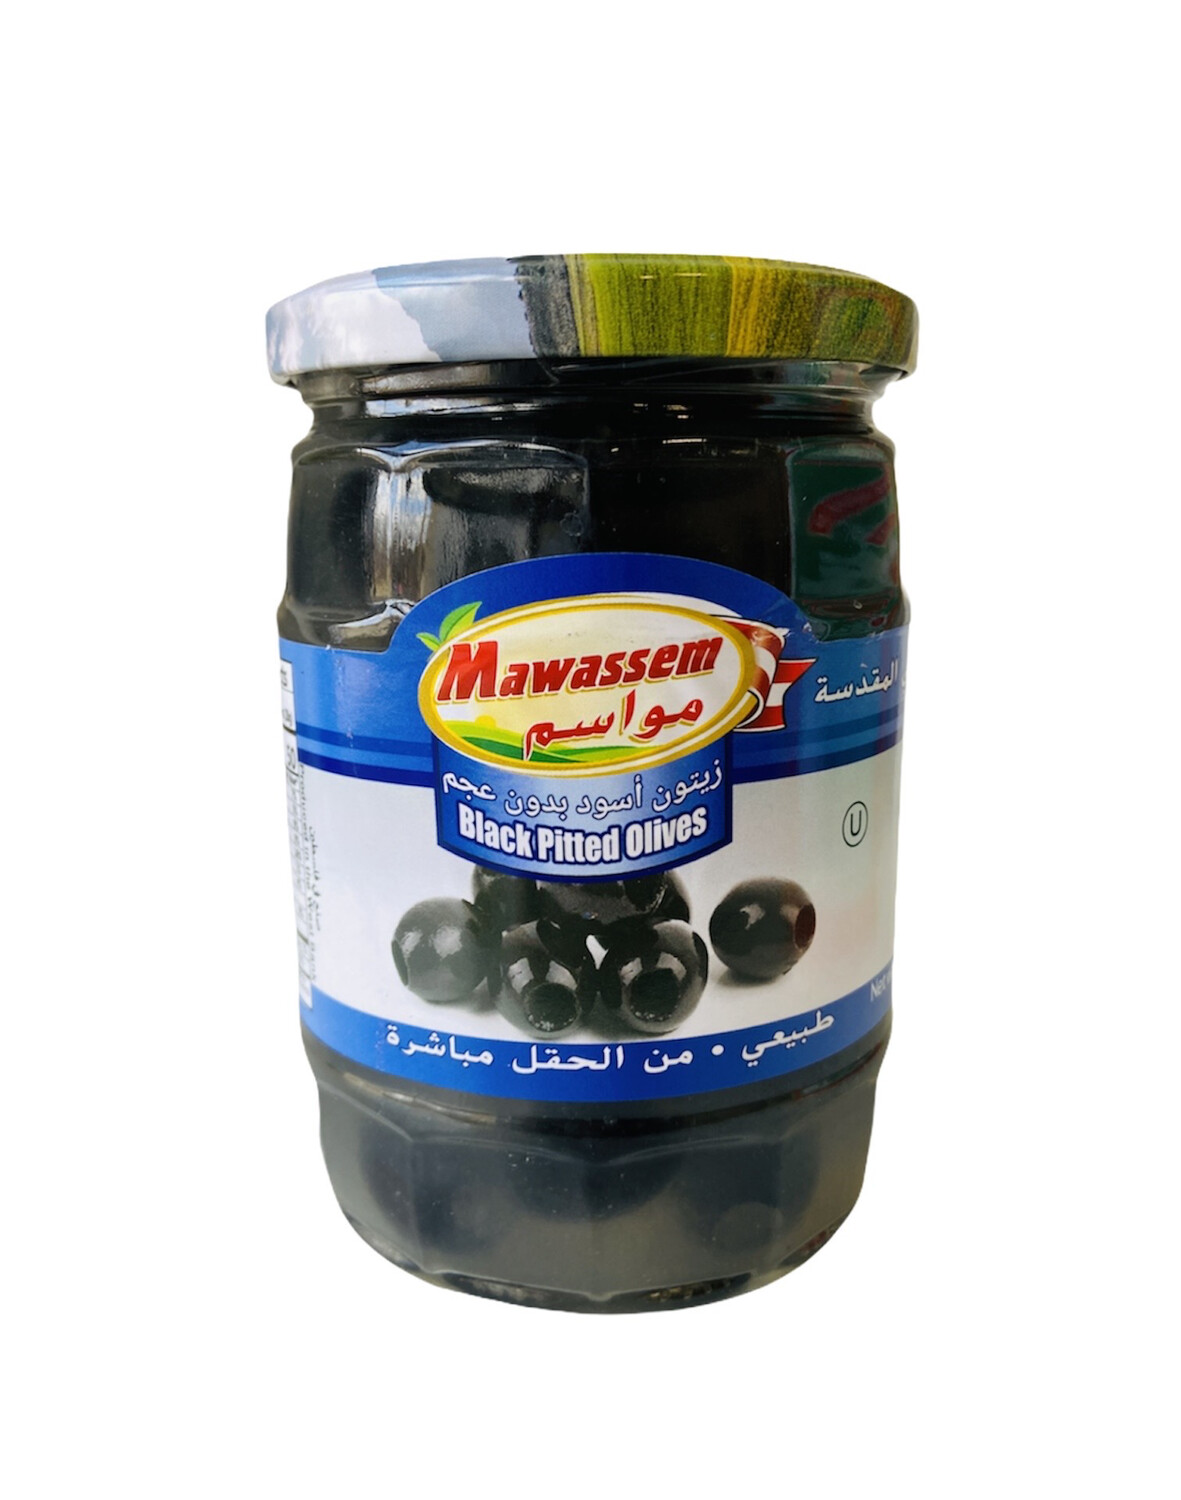 Mawasssem Pitted Black Olives 12x20oz